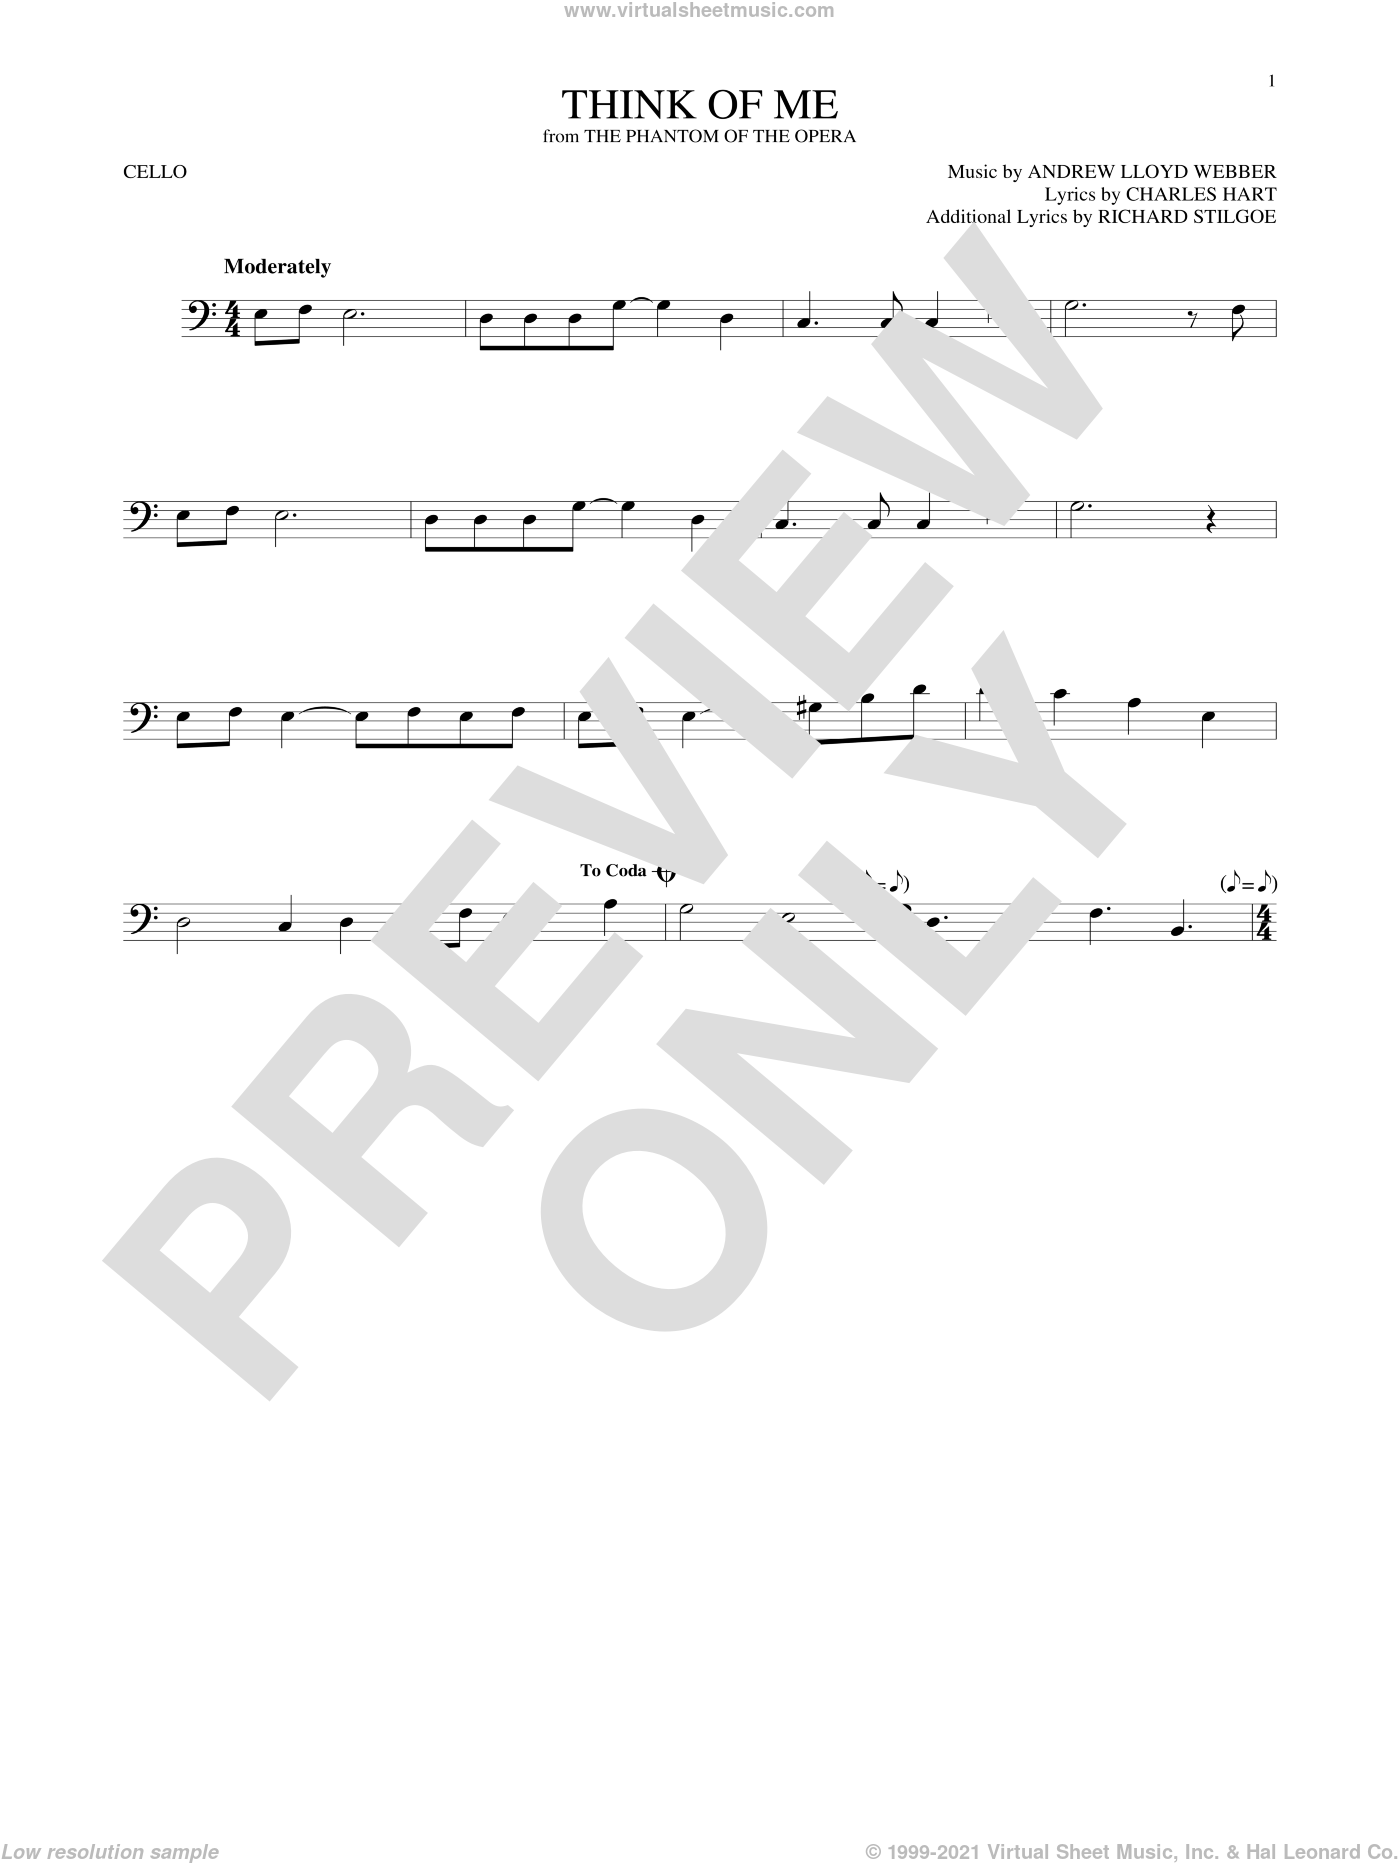 Think Of Me sheet music for cello solo by Andrew Lloyd Webber, Charles Hart and Richard Stilgoe, intermediate